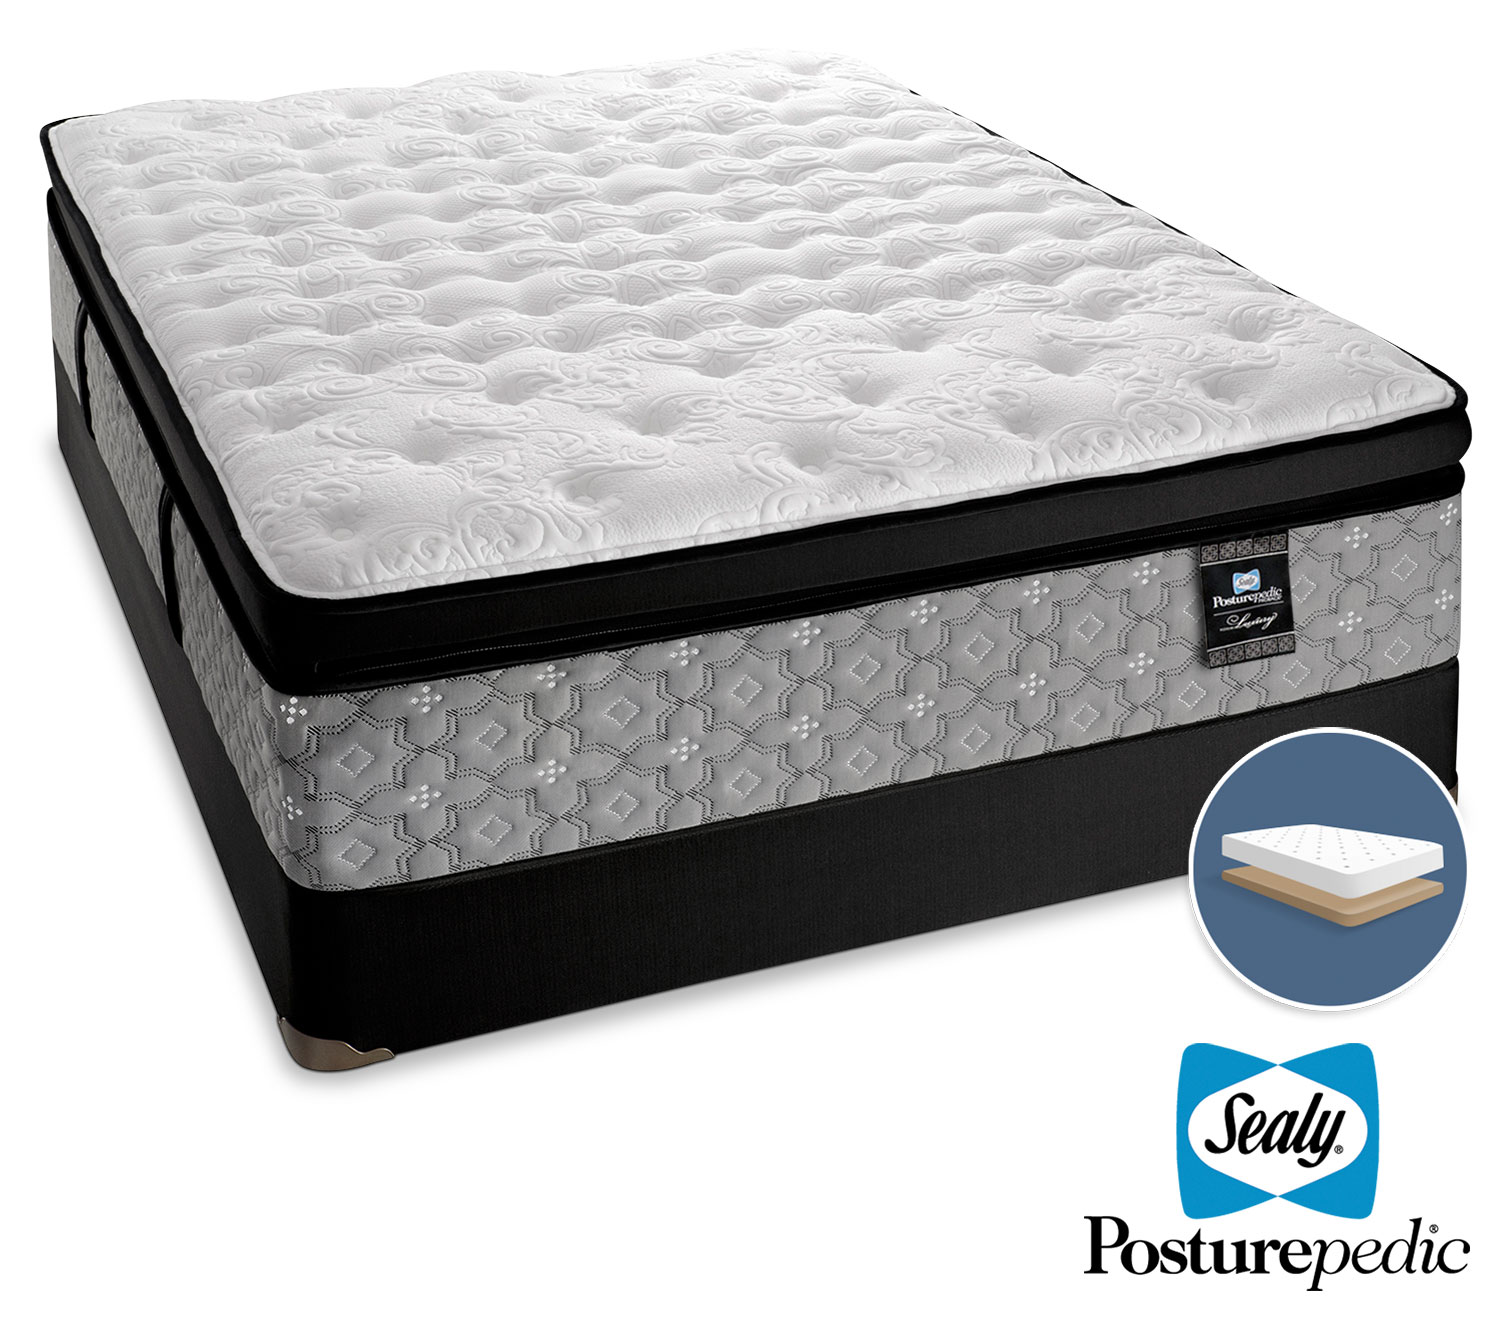 Mattresses and Bedding - Sealy Spartacus Firm Queen Mattress and Low-Profile Boxspring Set